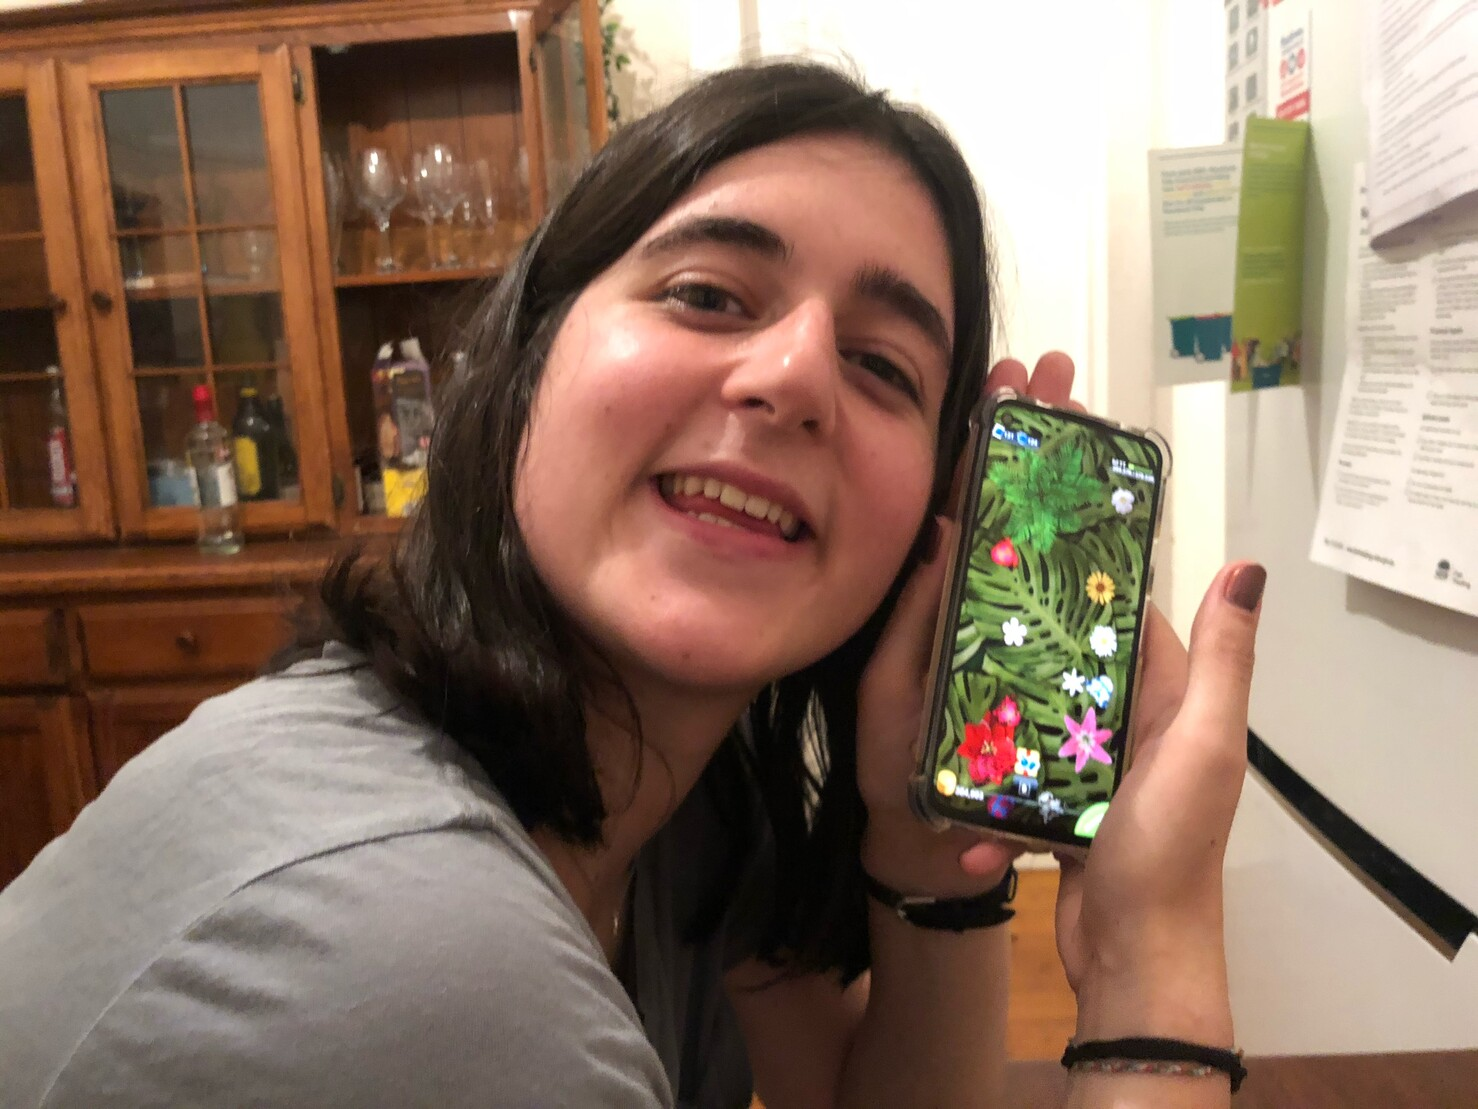 Photo of my partner, a young Caucasian woman with wavy shoulder-length brown hair holding her phone up with the Pocket Frogs game, and grinning very cutely.